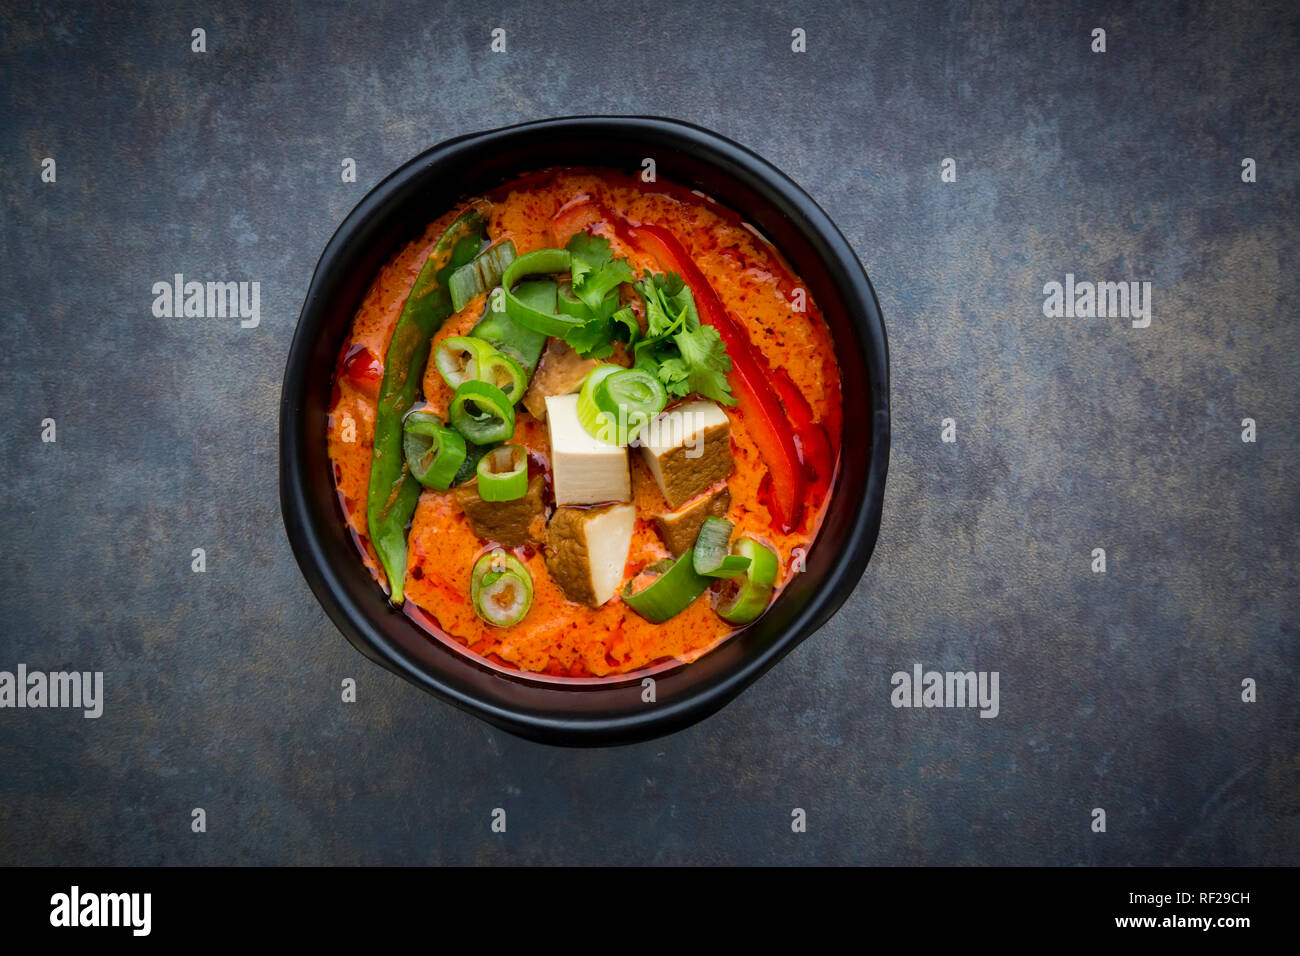 Bowl of red Thai Curry with snow peas, carrots, bell pepper, spring onions and smoked tofu - Stock Image